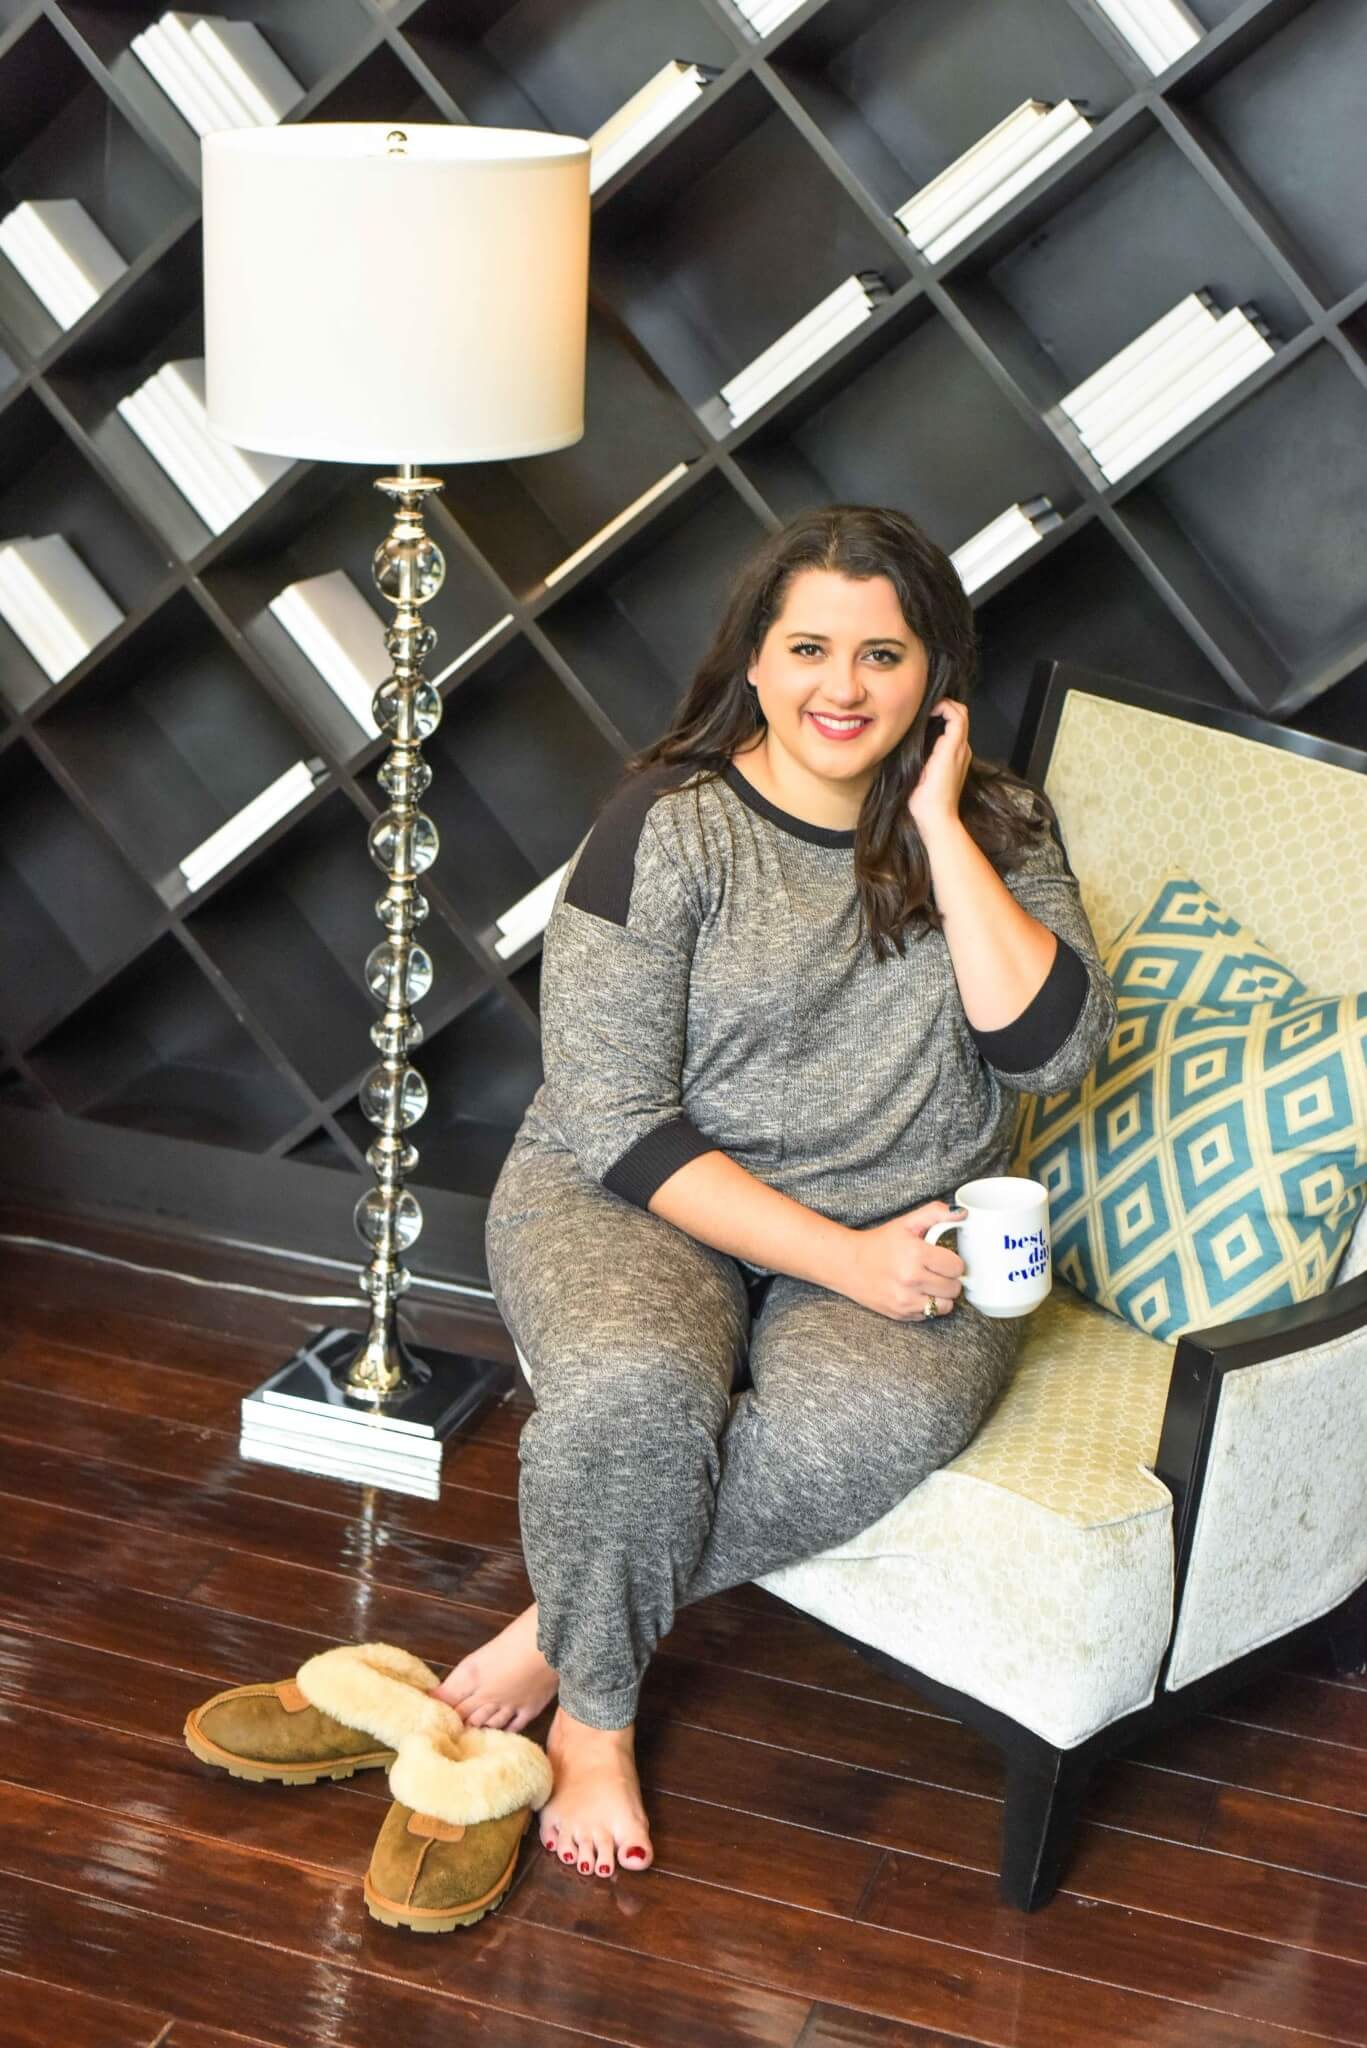 Looking chic while sleeping can make you wake up more rested, right? Ok, there's no science behind it, but if I feel great in them, then why wouldn't it be worth investing in a new pair? Make sure to check out Kohl's vast selection of plus size sleepwear to find your perfect pair. #kohls #affordablestyle #curvystyle